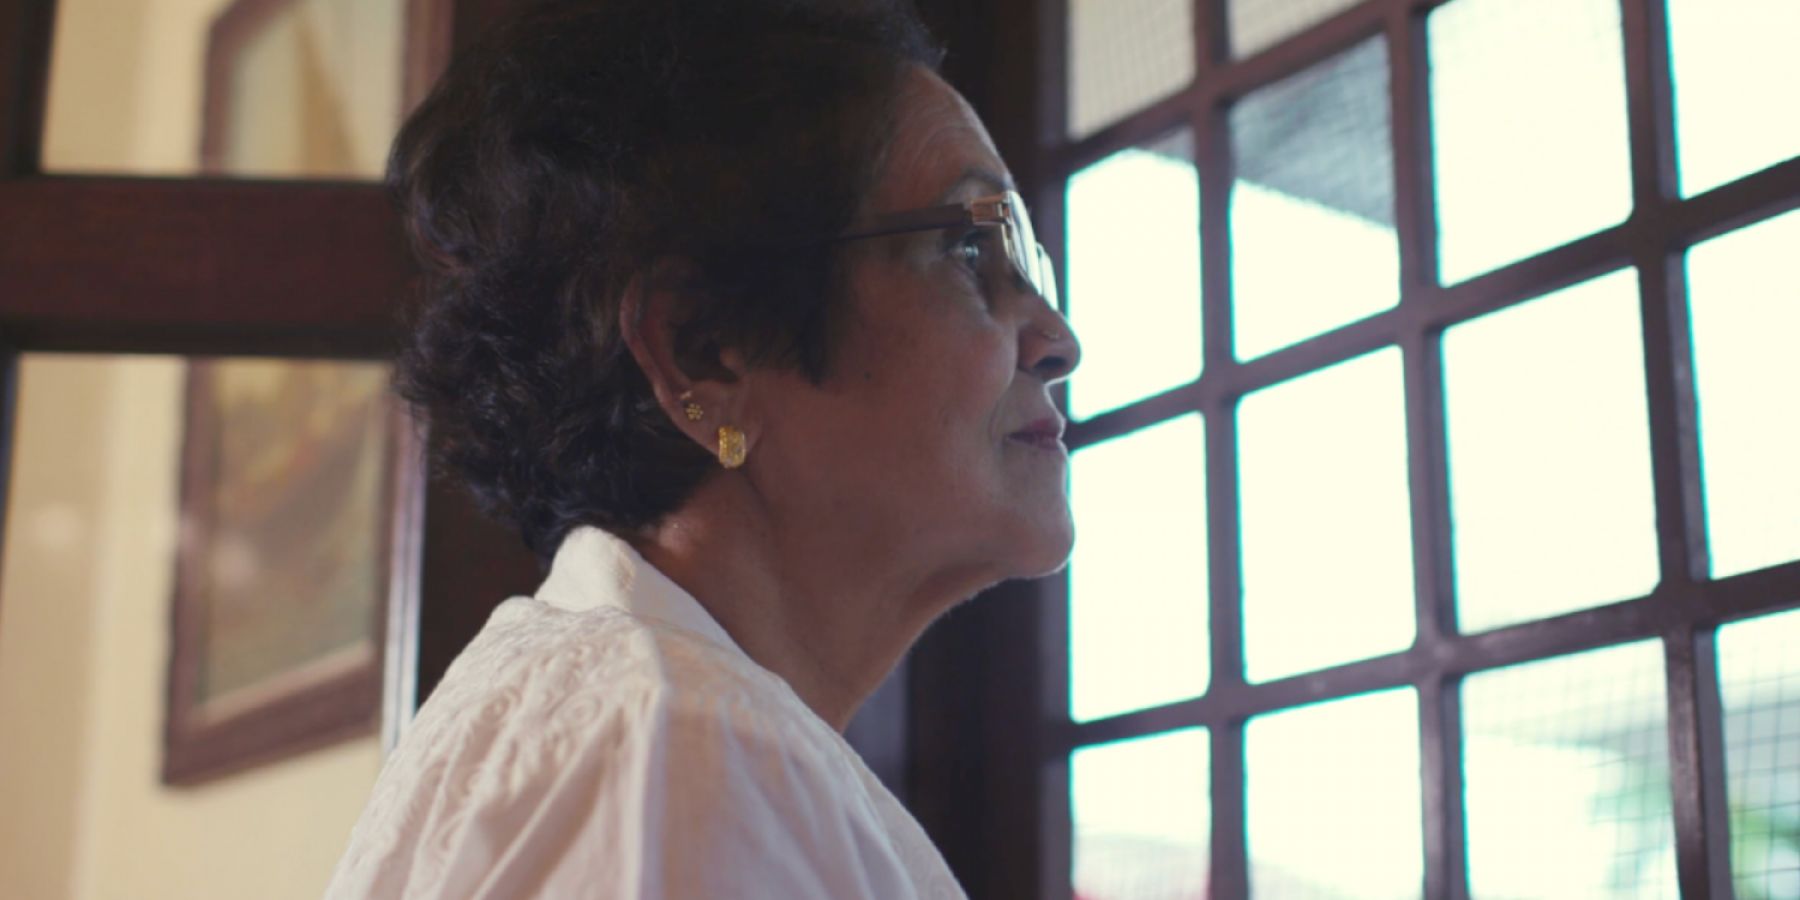 Vijayalakshimy Silvathorai, lived experience advocate. Image taken from the documentary 'NCD care in a global crisis' produced by BBC StoryWorks for NCD Alliance